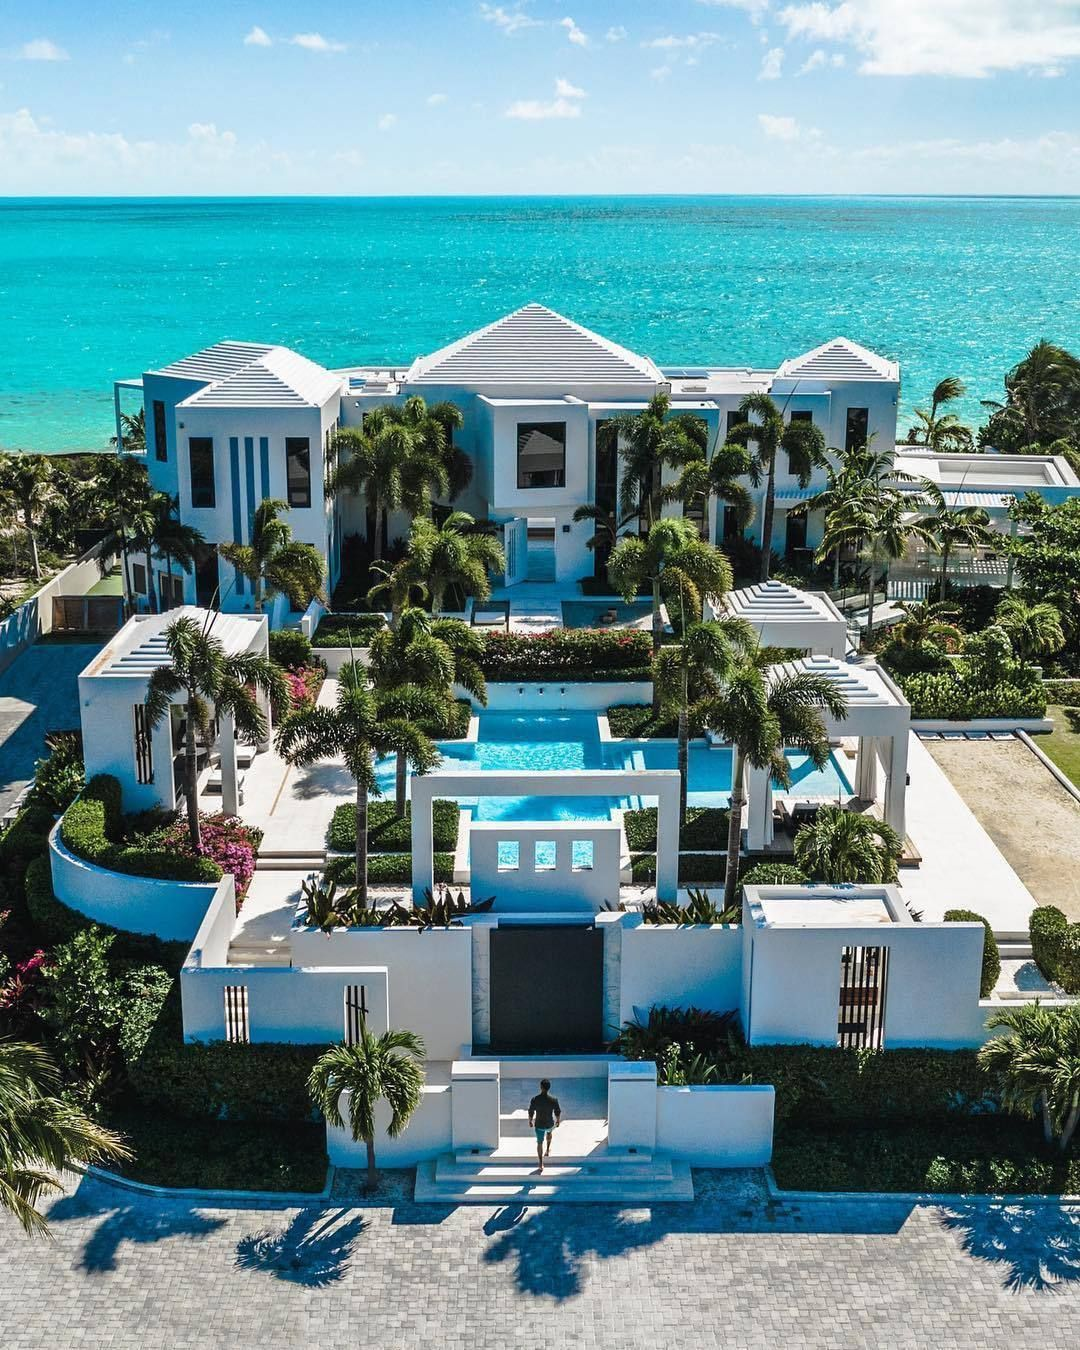 Pin By Alyssa N On Beach House Dream House Exterior Mansions